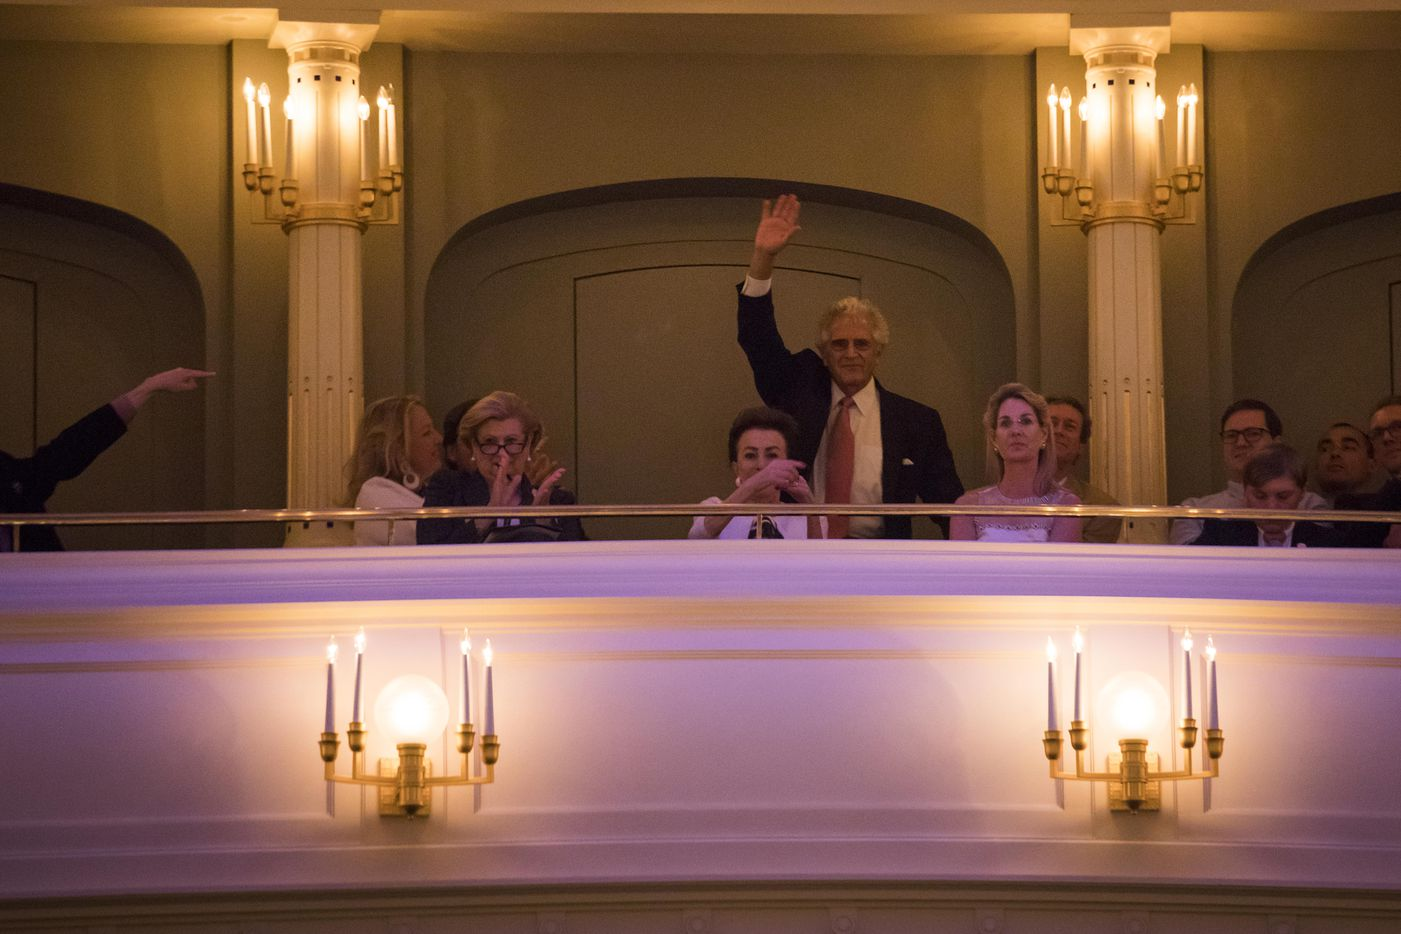 Former jury chairman John Giordano waves from the balcony during the Van Cliburn International Piano Competition awards ceremony at the Bass Performance Hall in Fort Worth on Saturday, June 10, 2017. (Smiley N. Pool/The Dallas Morning News)